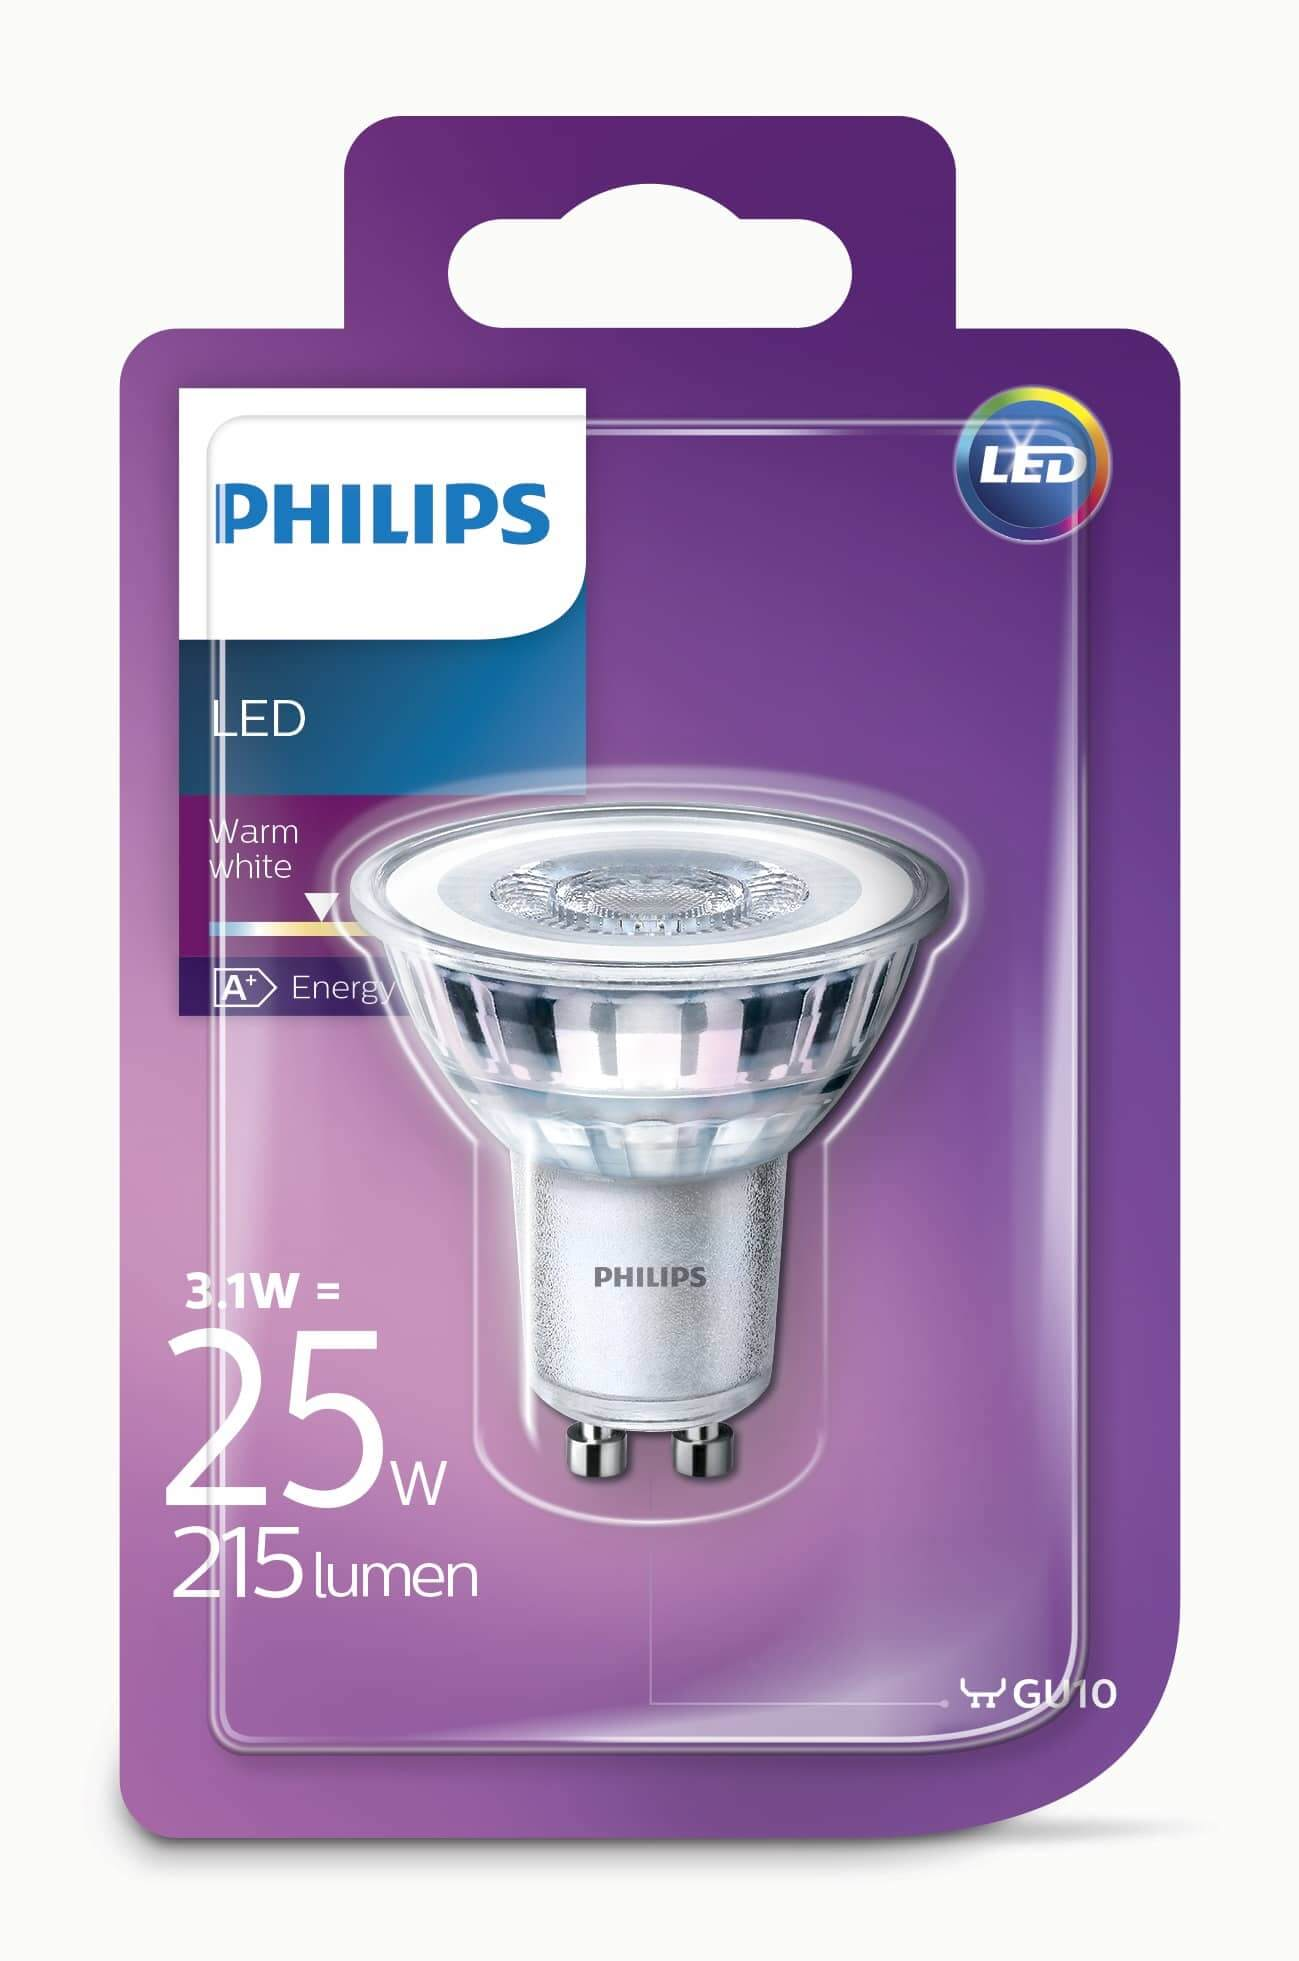 philips gu10 led spot ledclassic 3 1w 215lm warmweiss hier kaufen. Black Bedroom Furniture Sets. Home Design Ideas